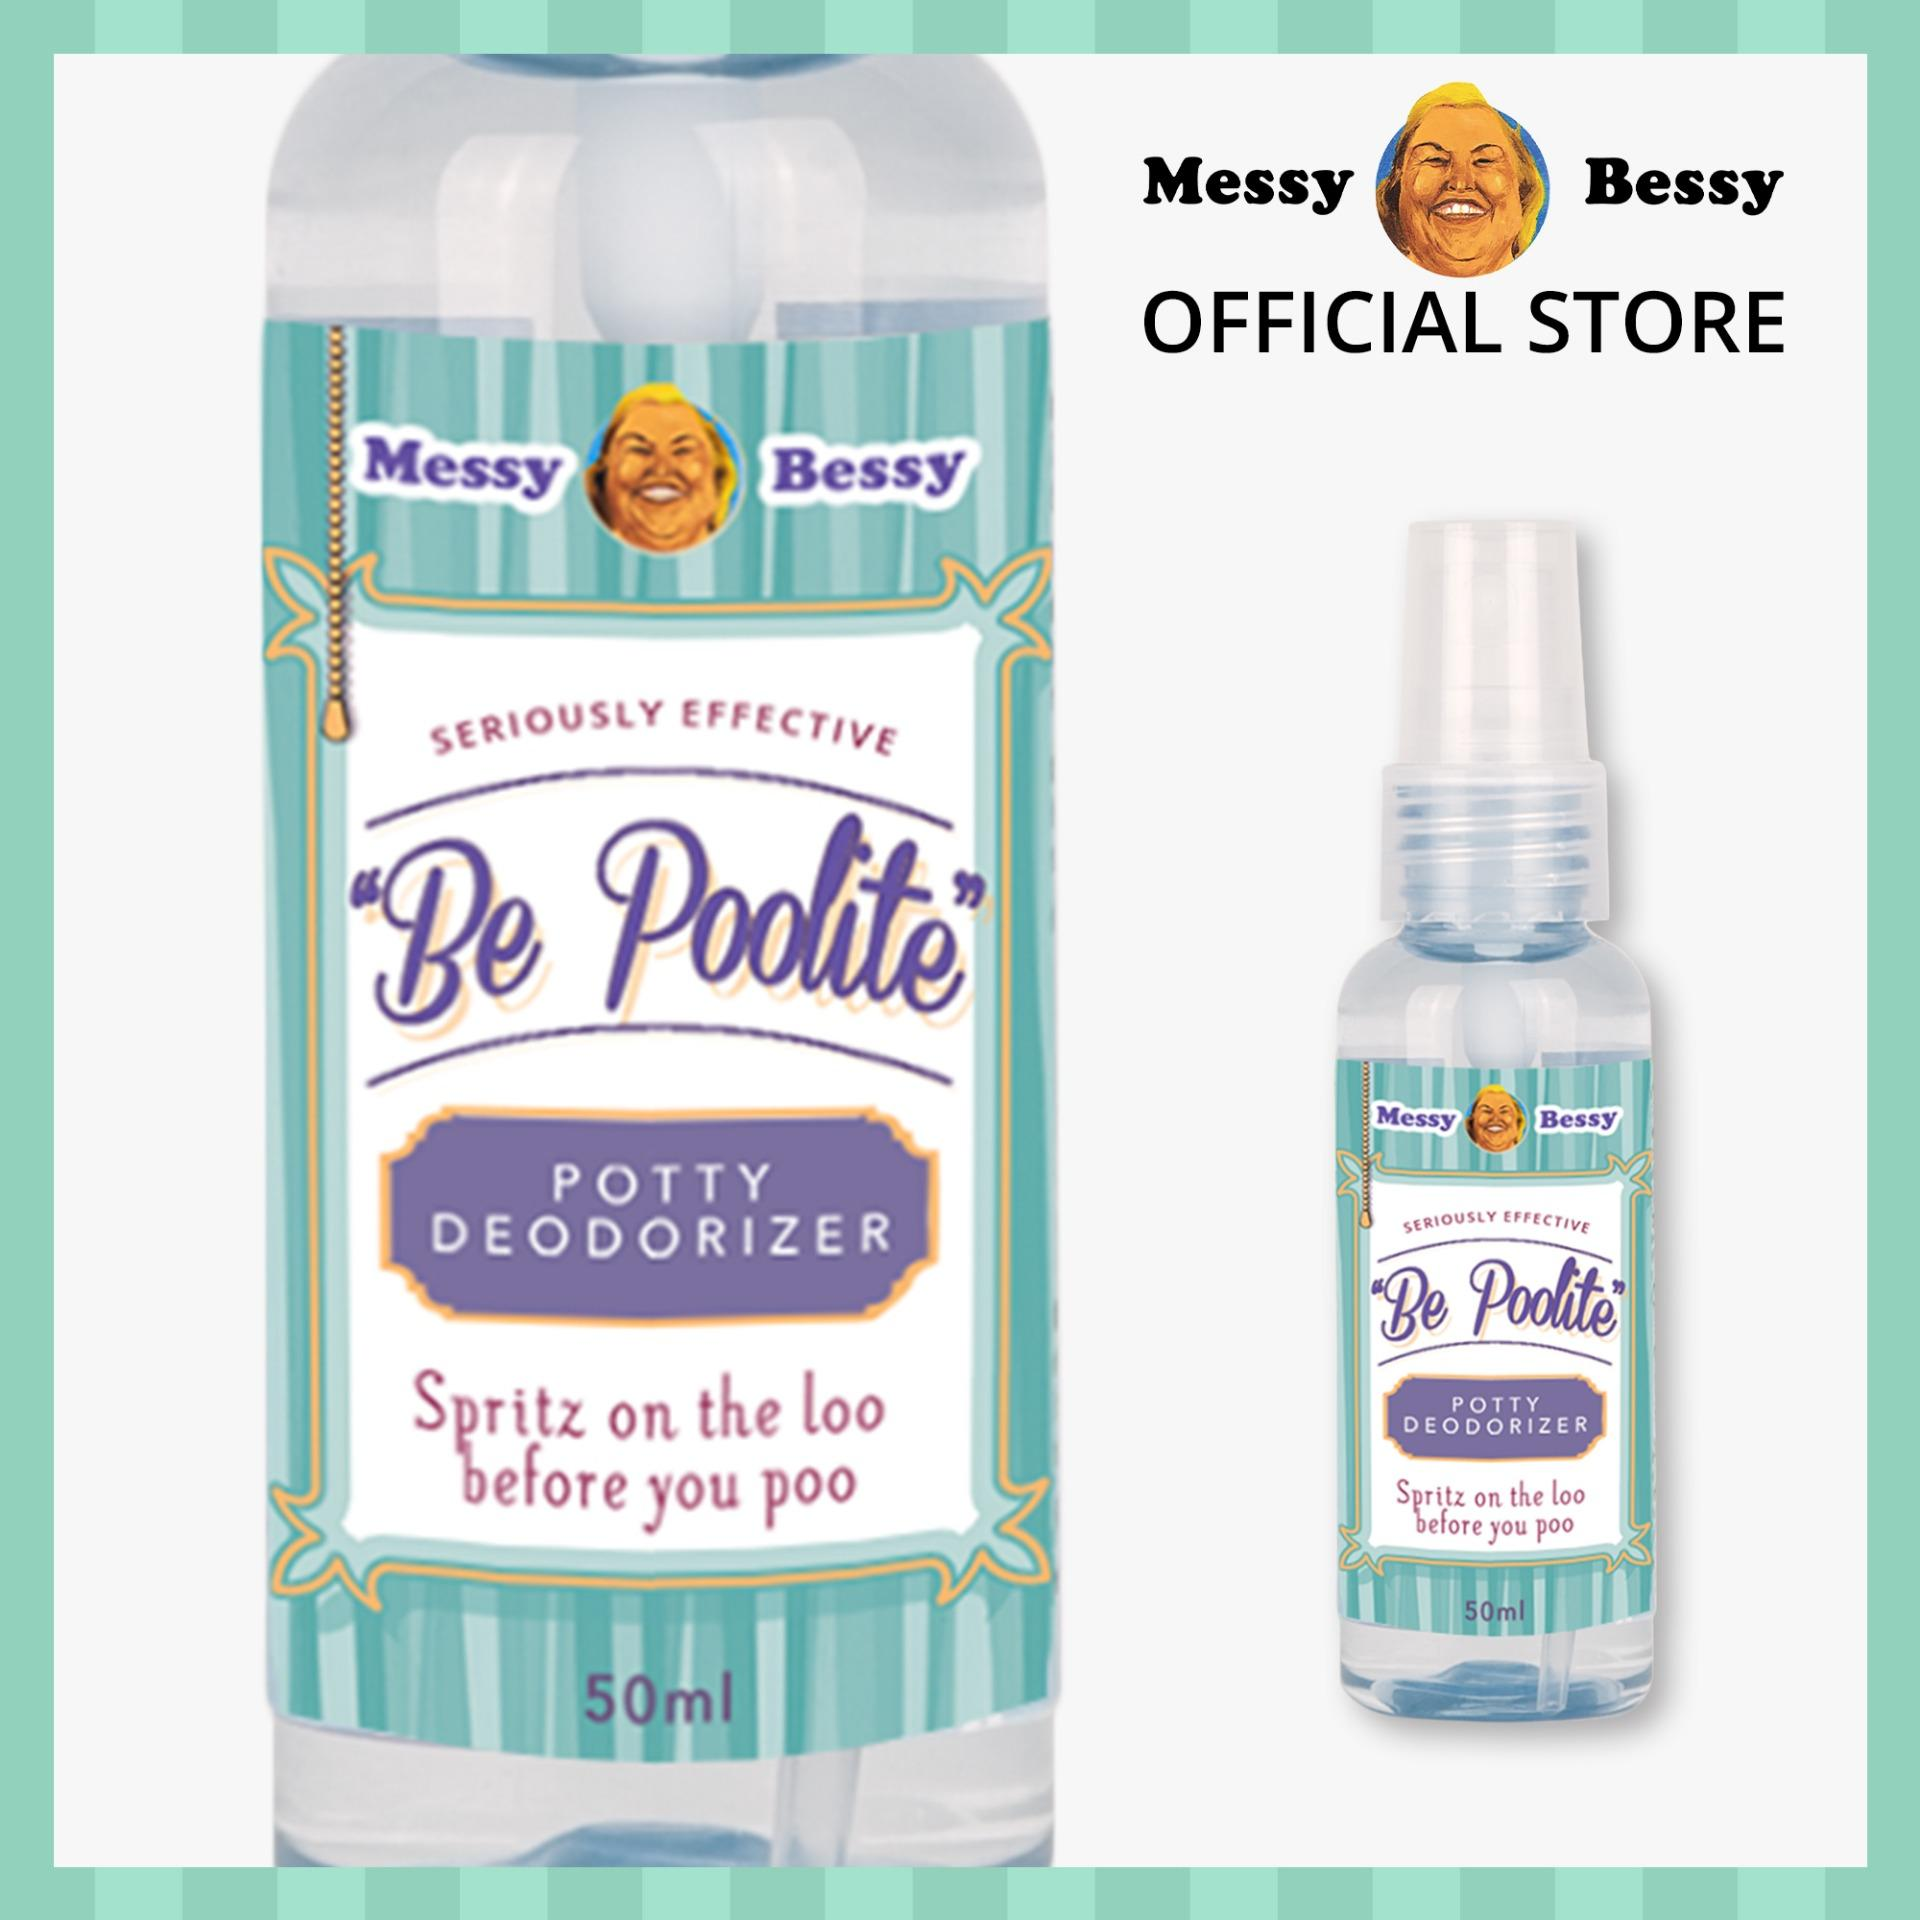 Messy Bessy Be Poolite Deodorizer 50ml By Messy Bessy Official.